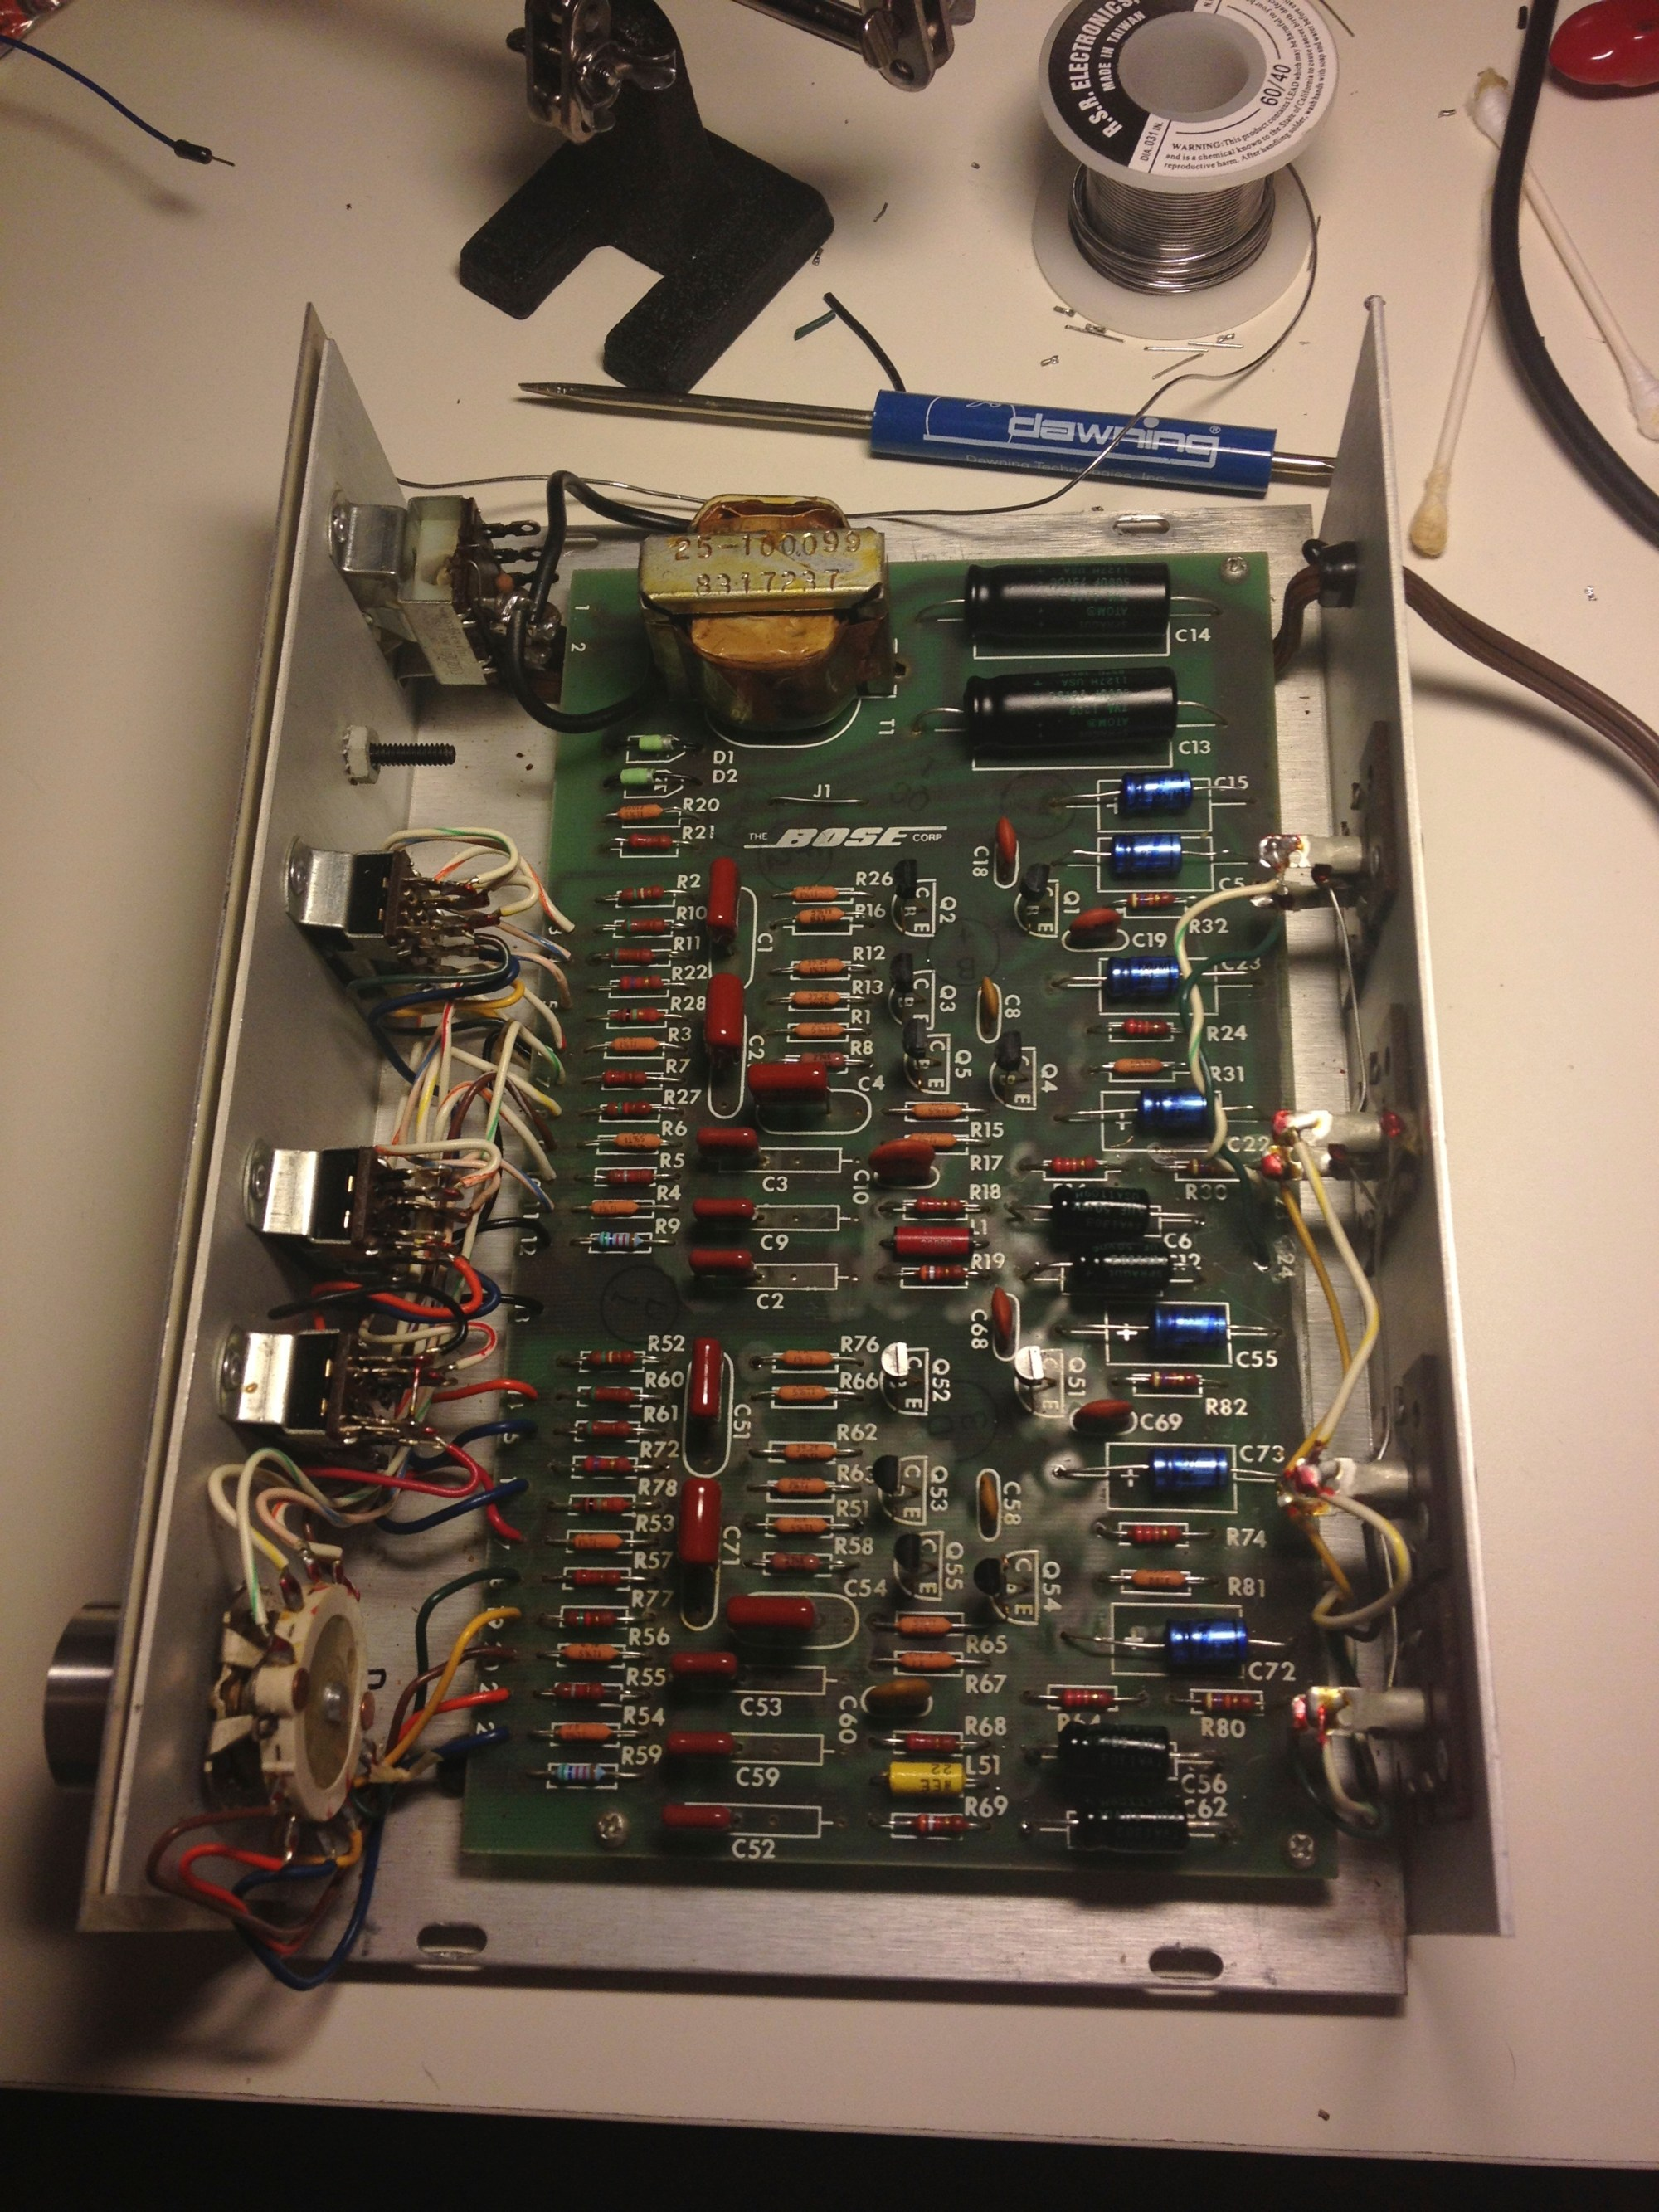 hight resolution of bose 901 equalizer repair jpreardon com bose t20 wiring diagram bose 901 eq board after